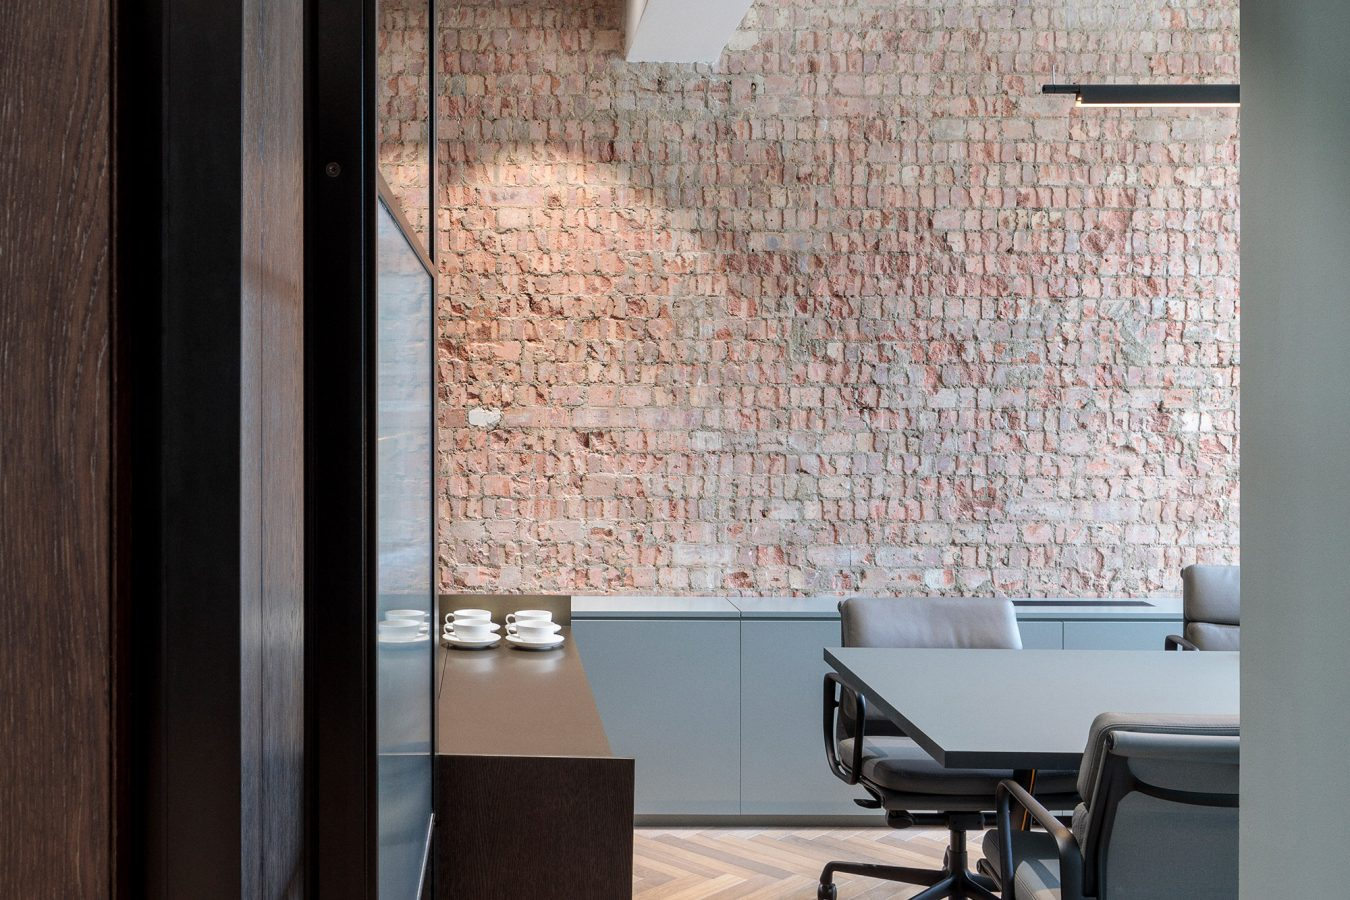 Feature wall with exposed brickwork in an office meeting room.